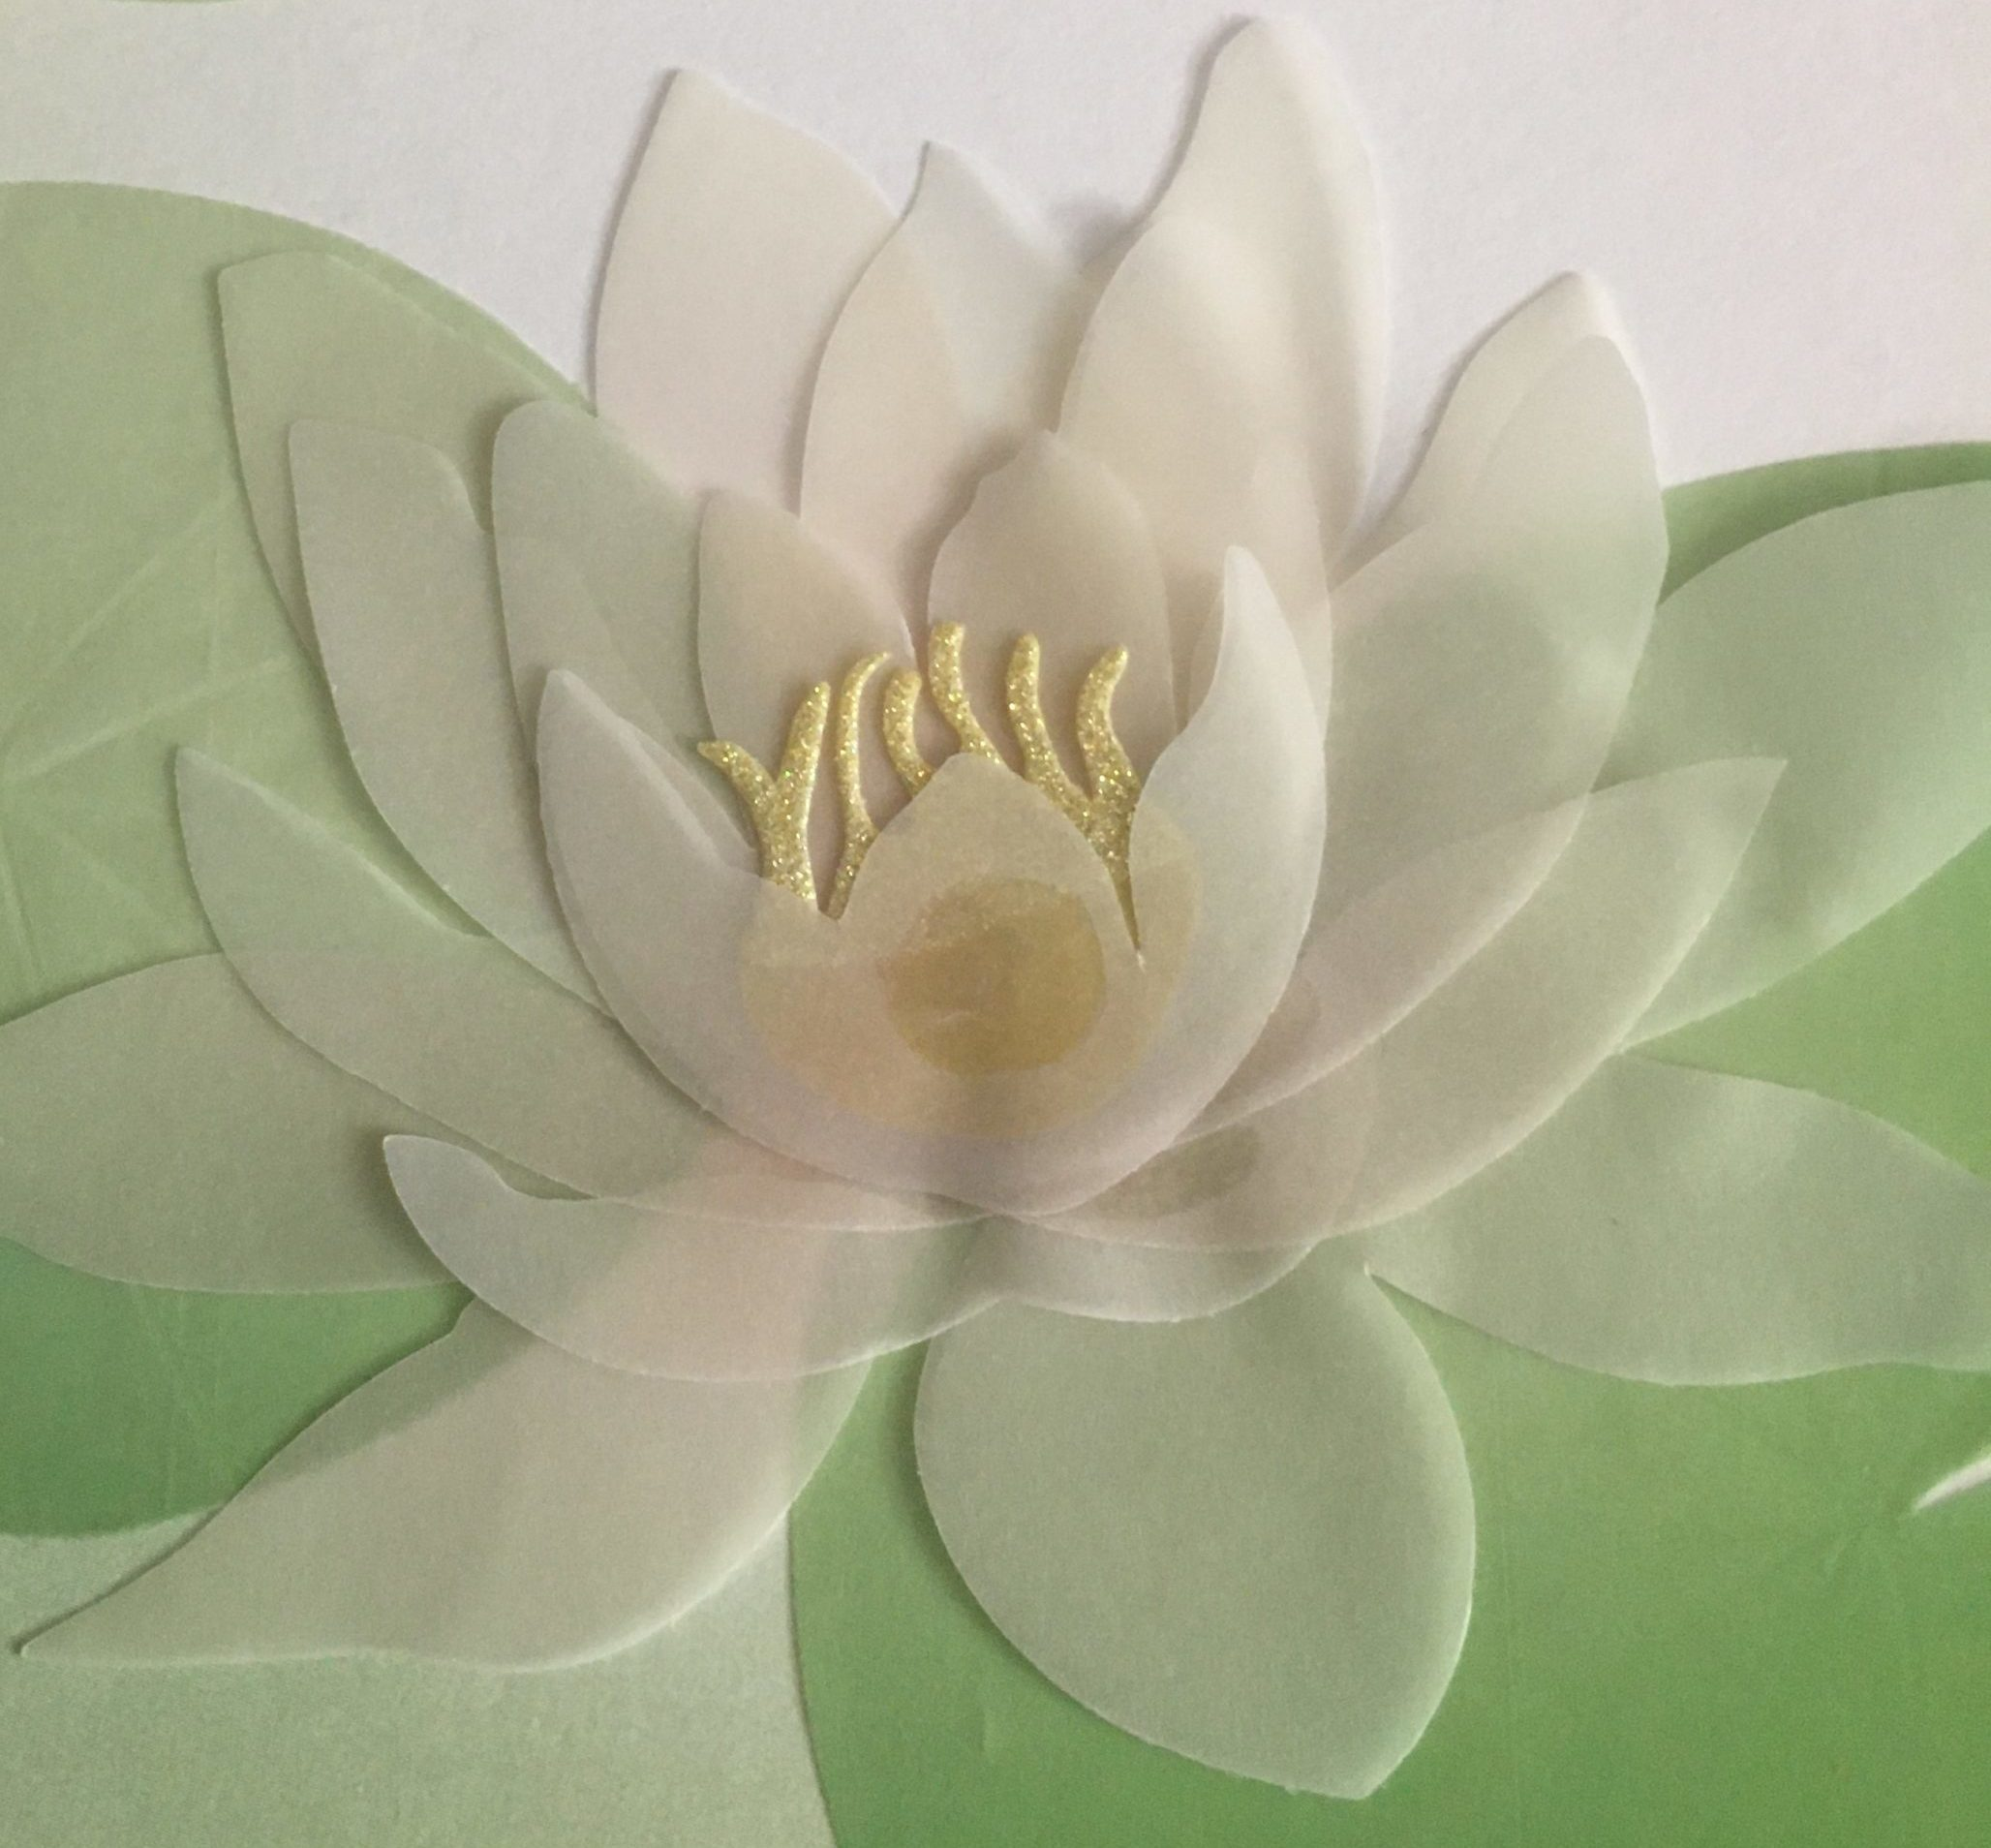 A Lotus Blooming